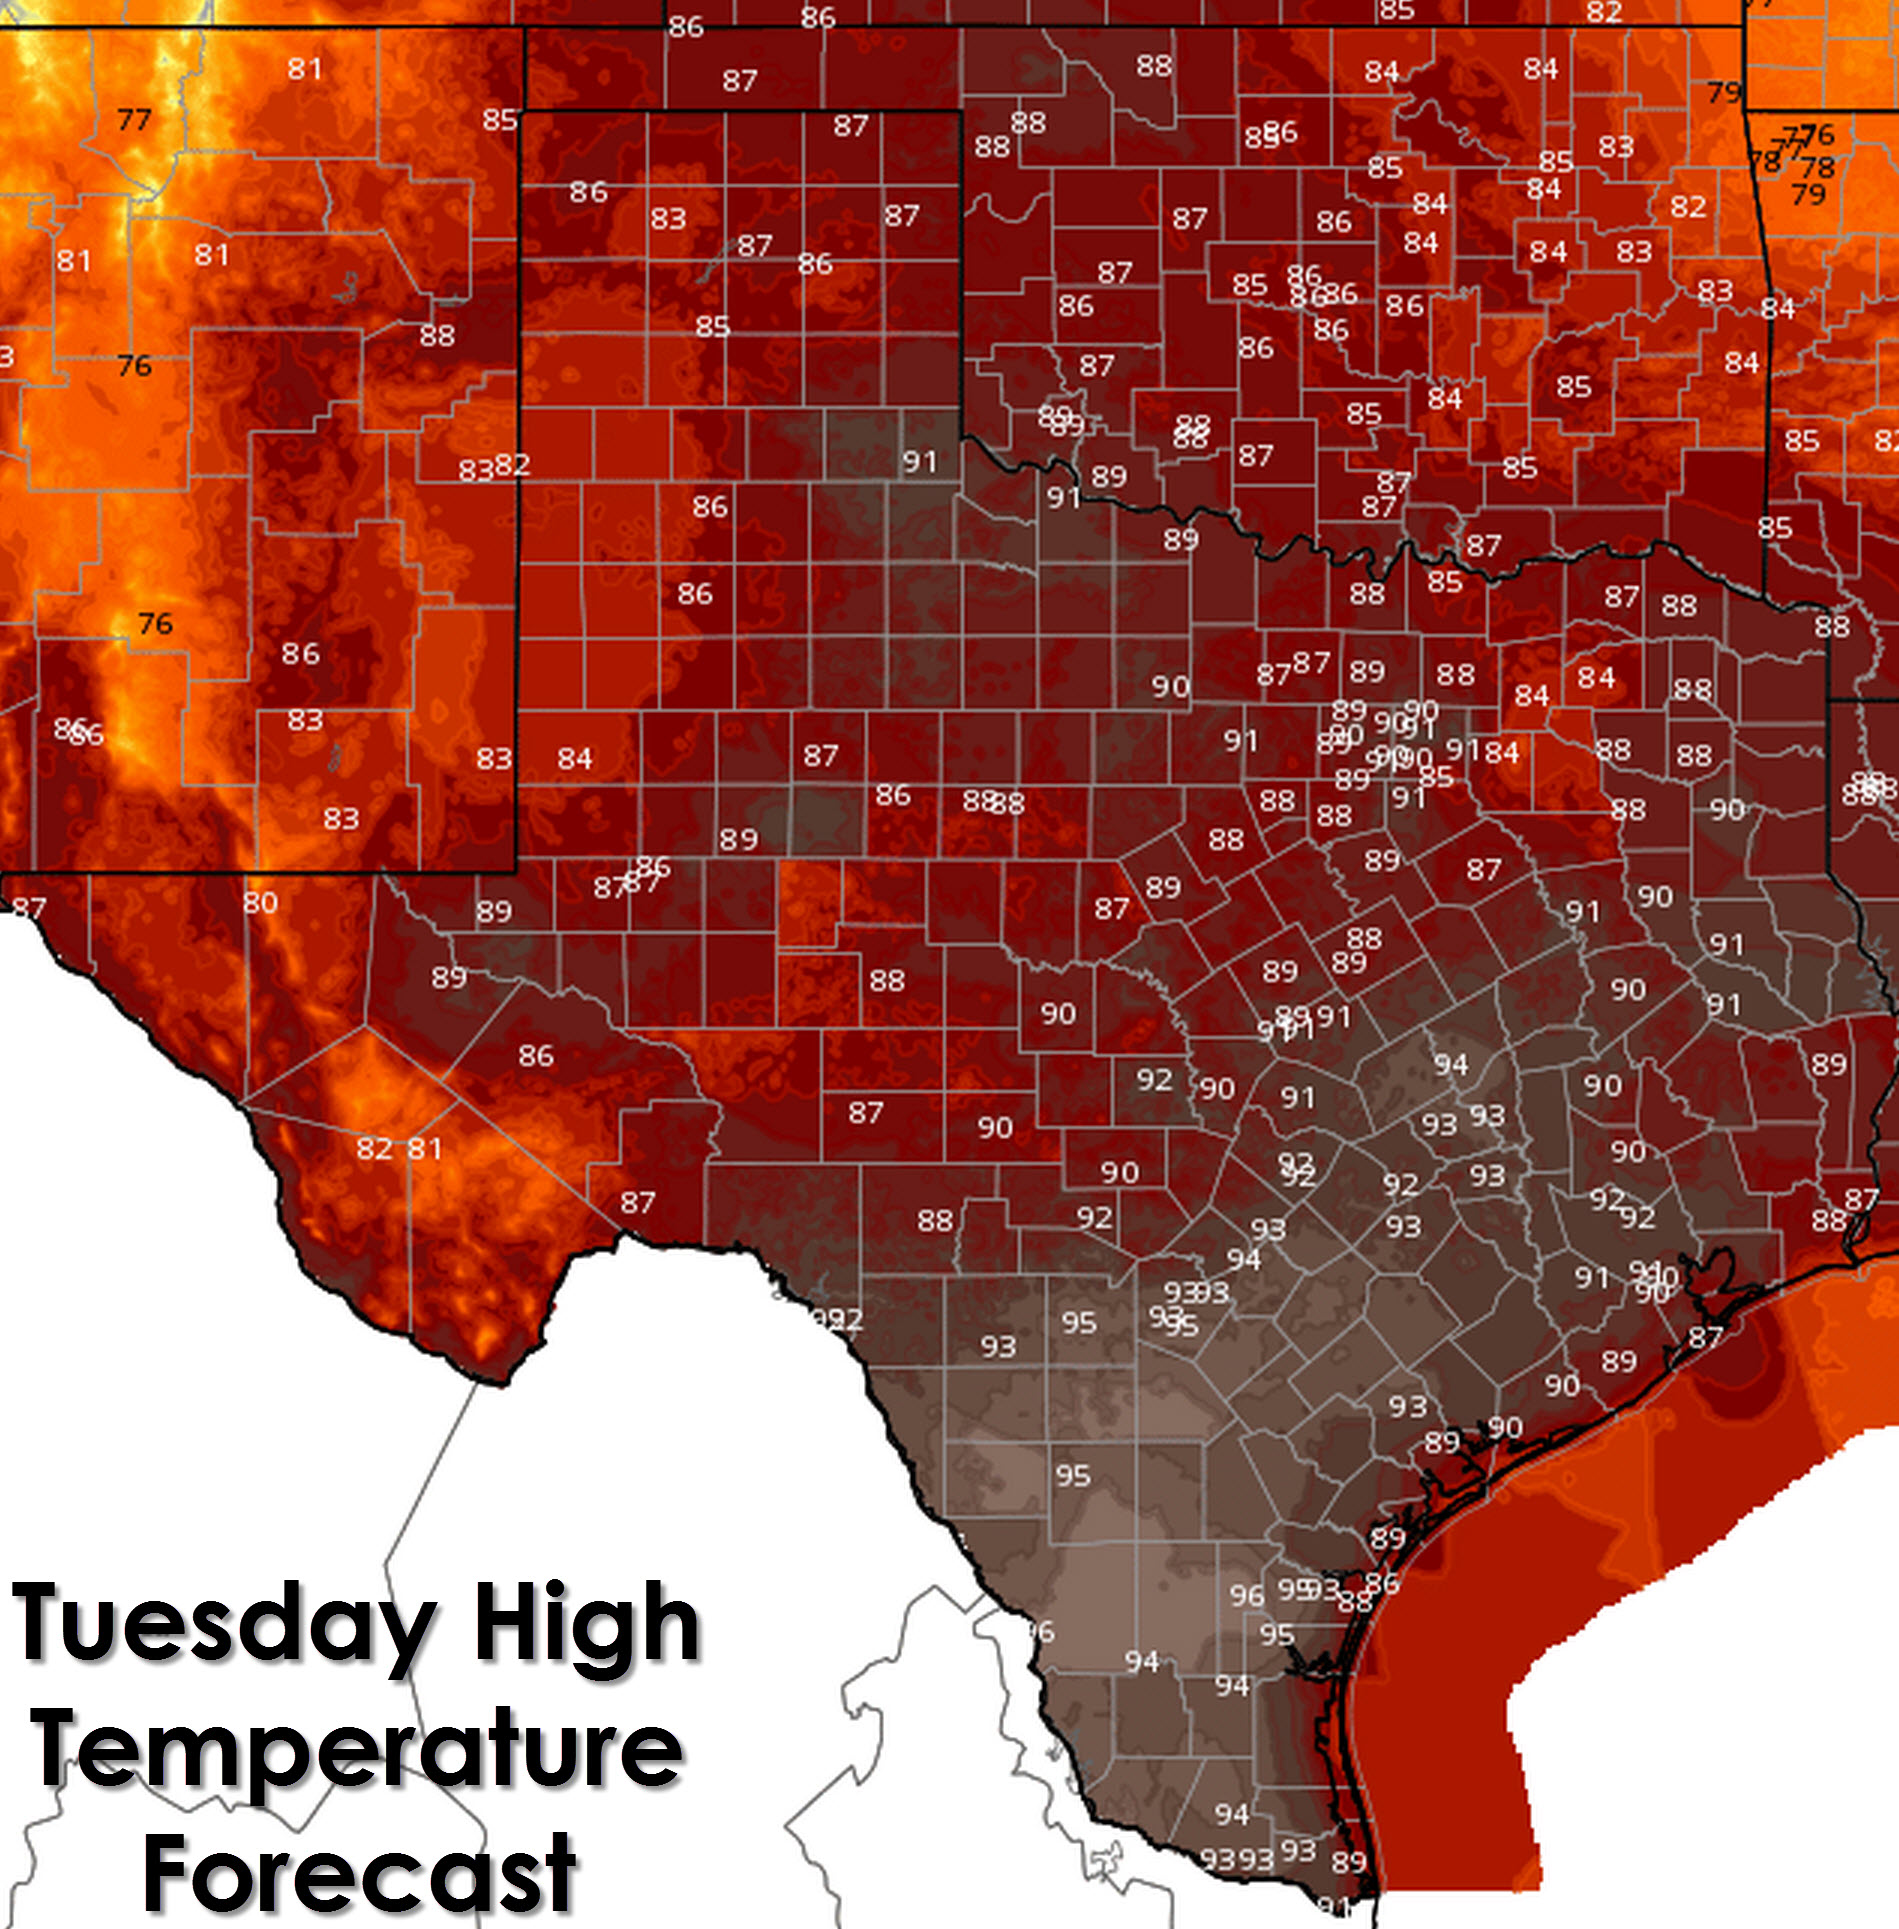 This afternoon's high temperature forecast from the National Weather Service